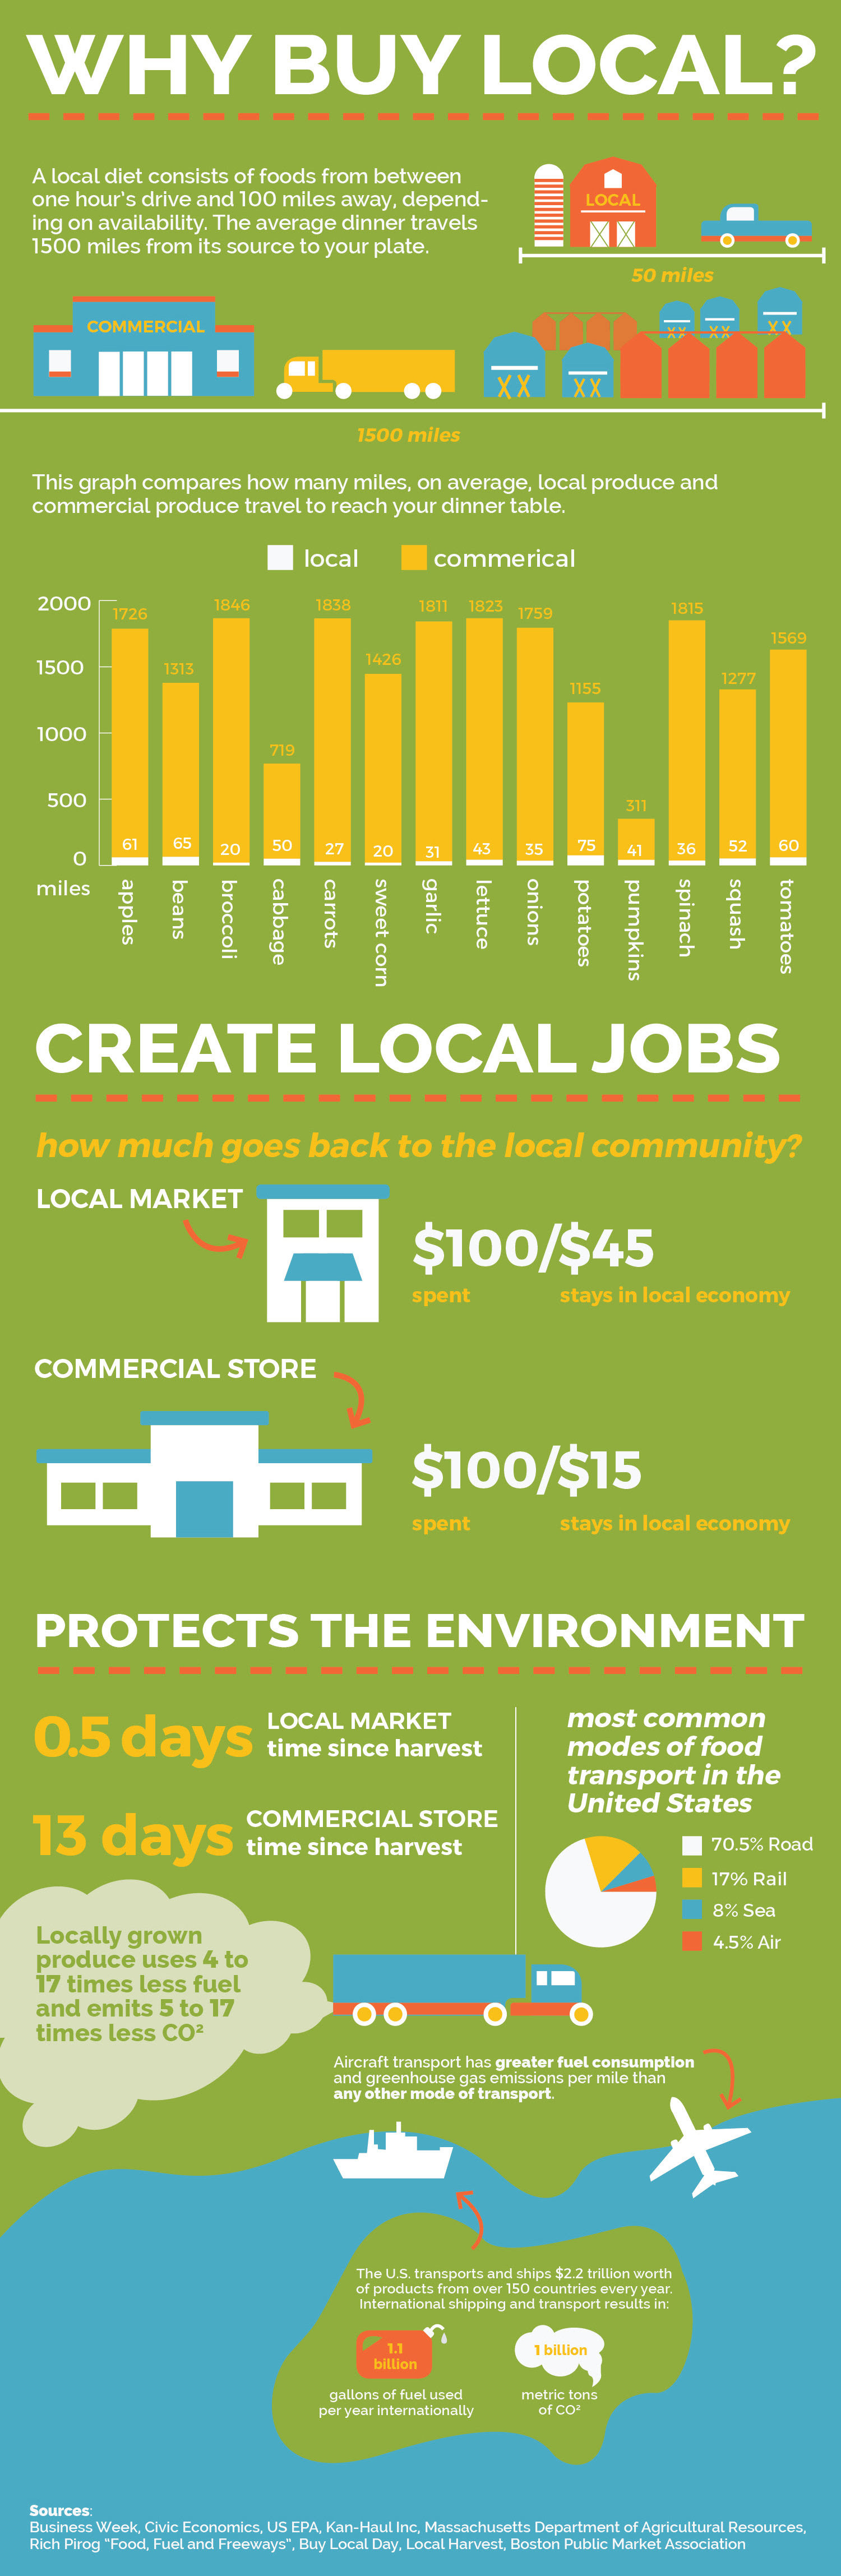 Why Buy Local